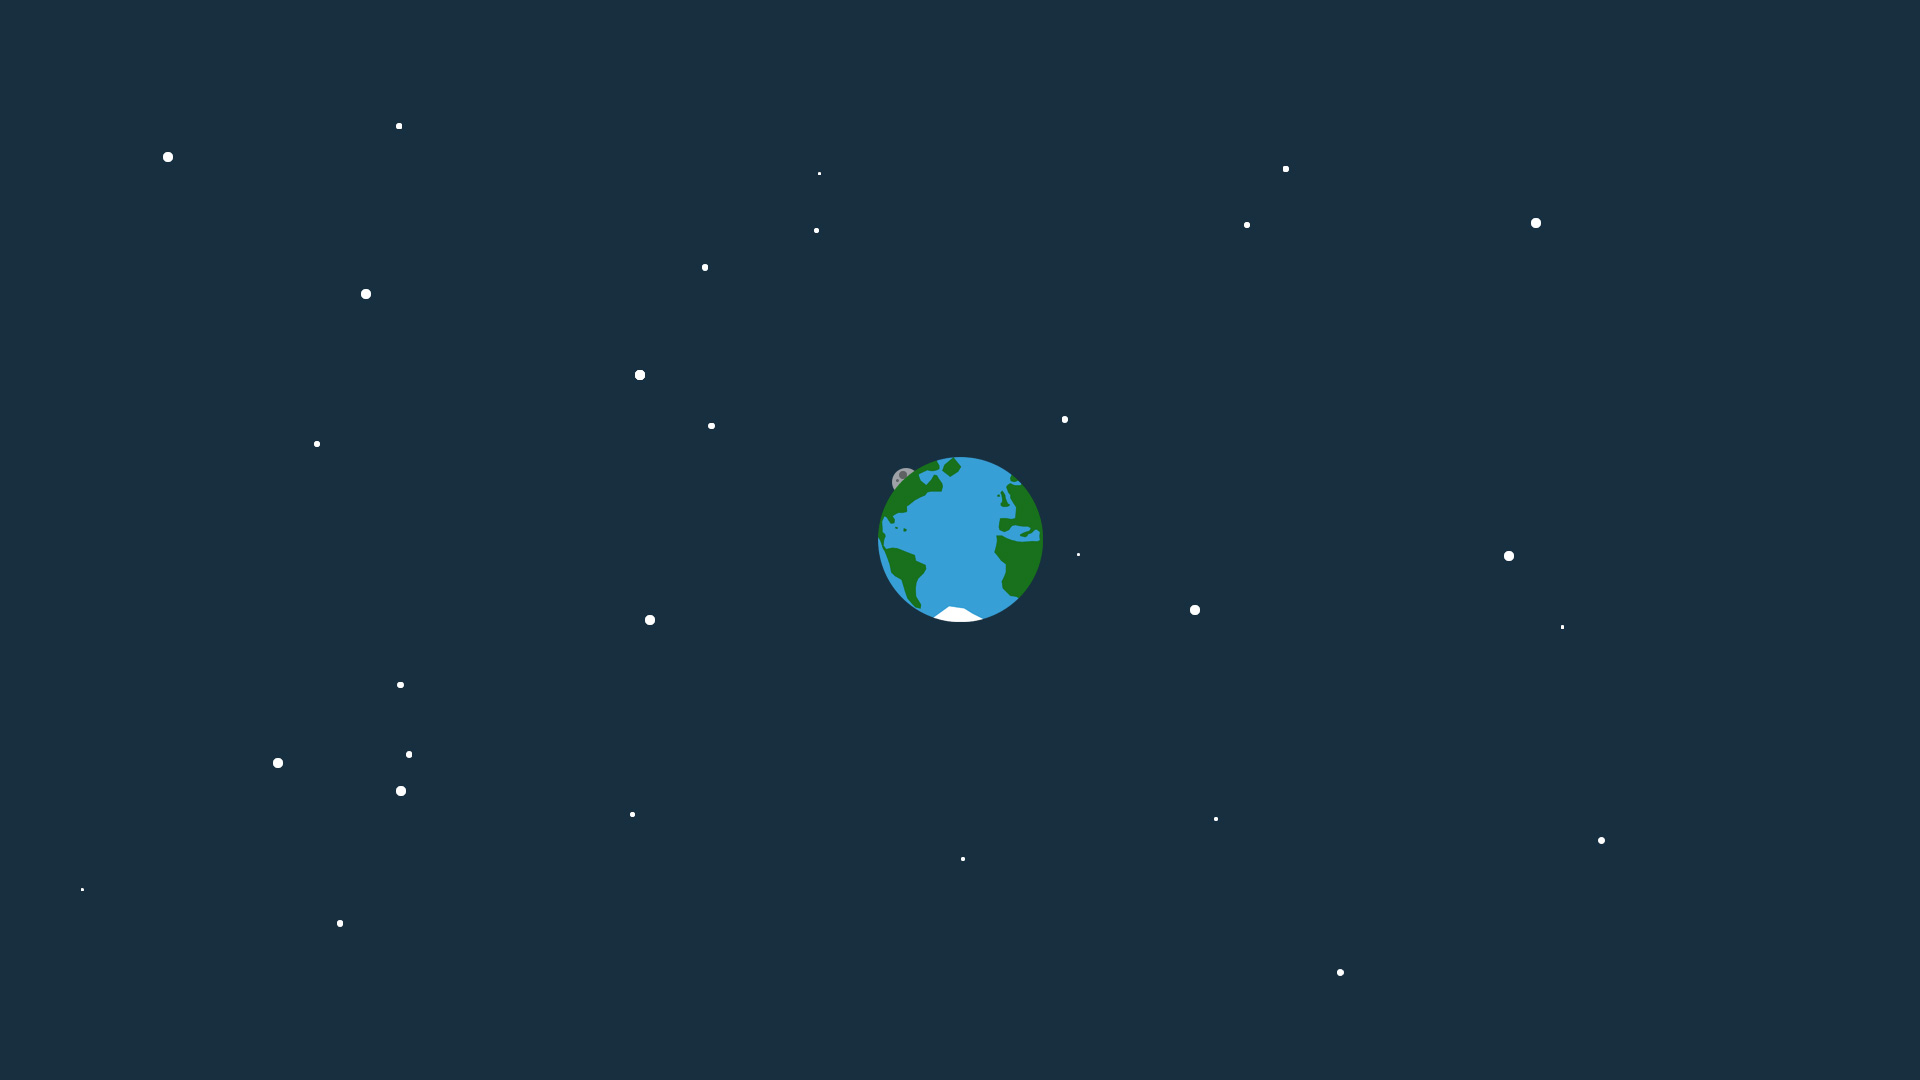 Space minimalism hd hd artist 4k wallpapers images for Minimal art hd